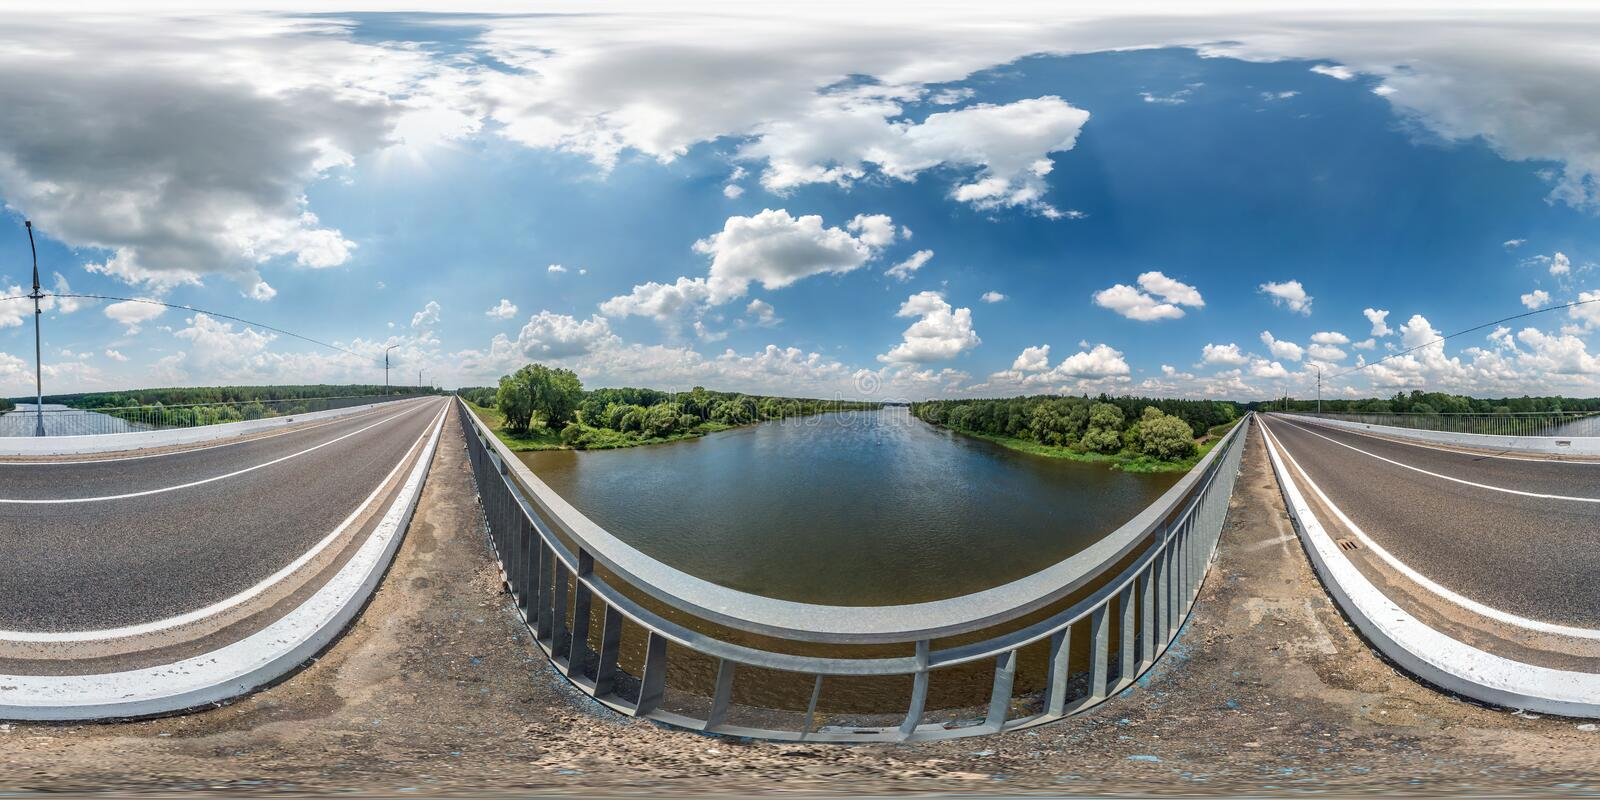 Full seamless spherical hdri panorama 360 degrees  angle view on concrete bridge near asphalt road across river in sunny summer. Day in equirectangular royalty free stock photo